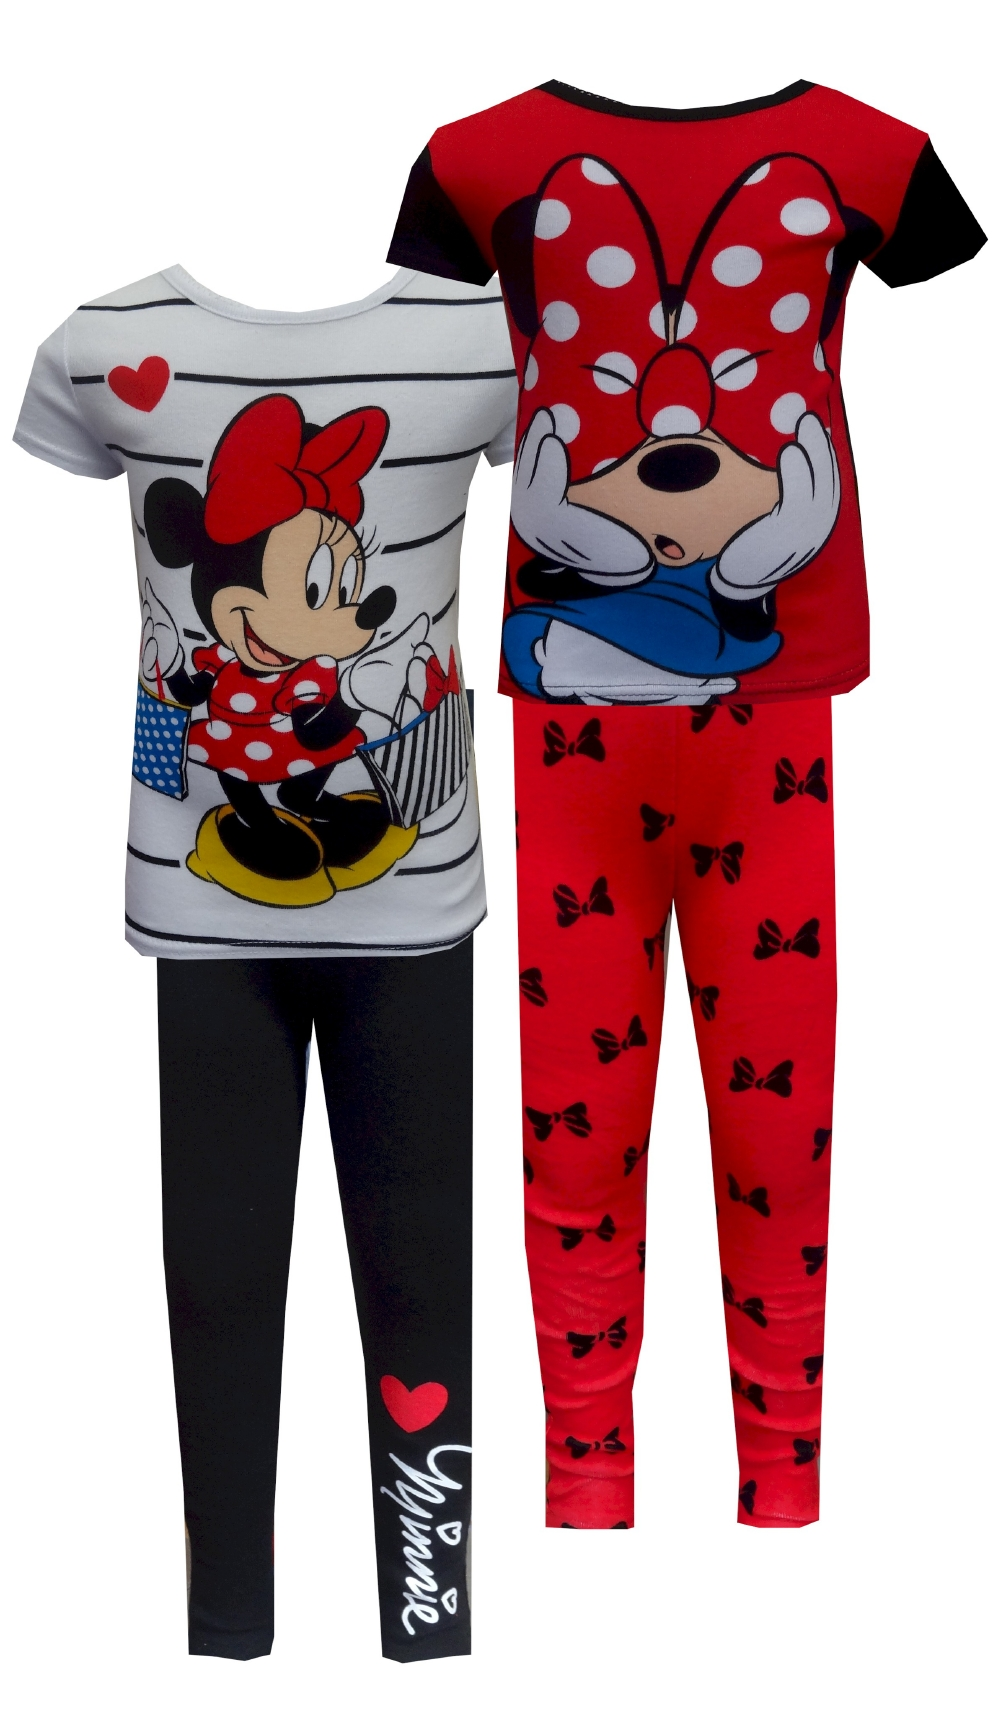 Image of Disney Minnie Mouse 4 Piece Pajama for girls